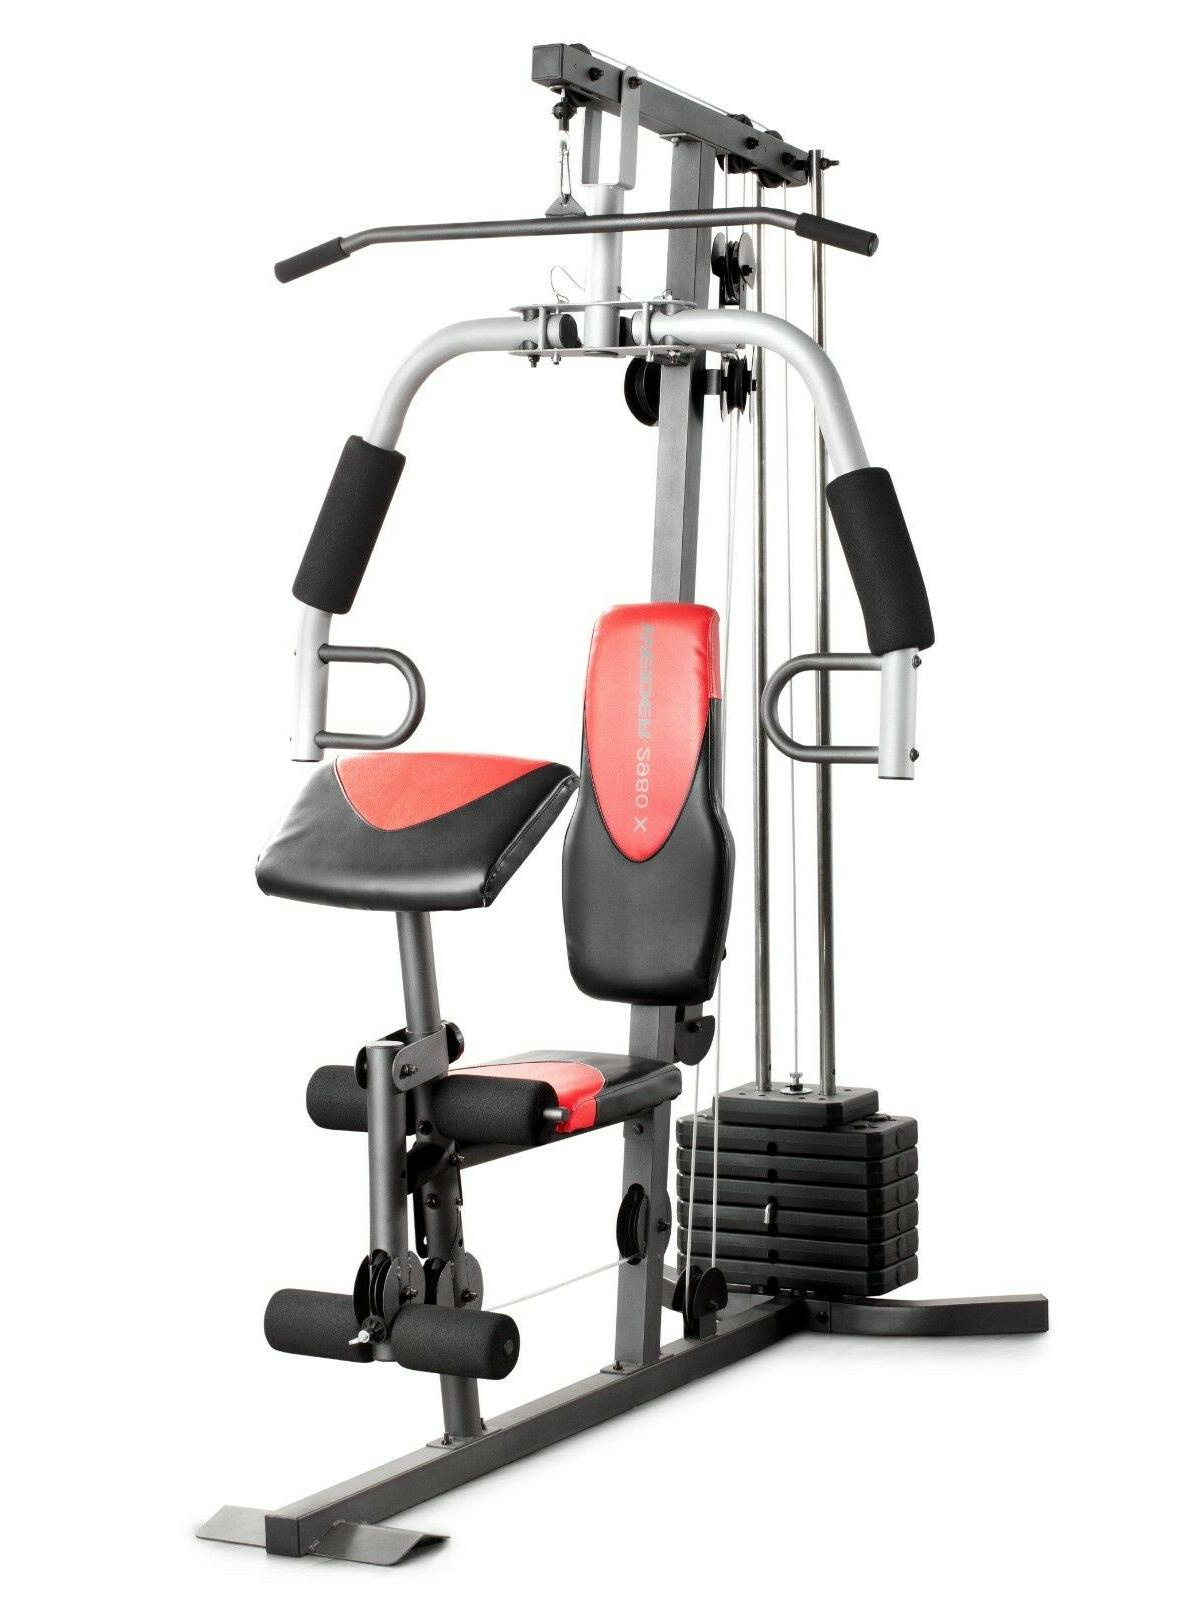 home gym with 214 lbs of resistance